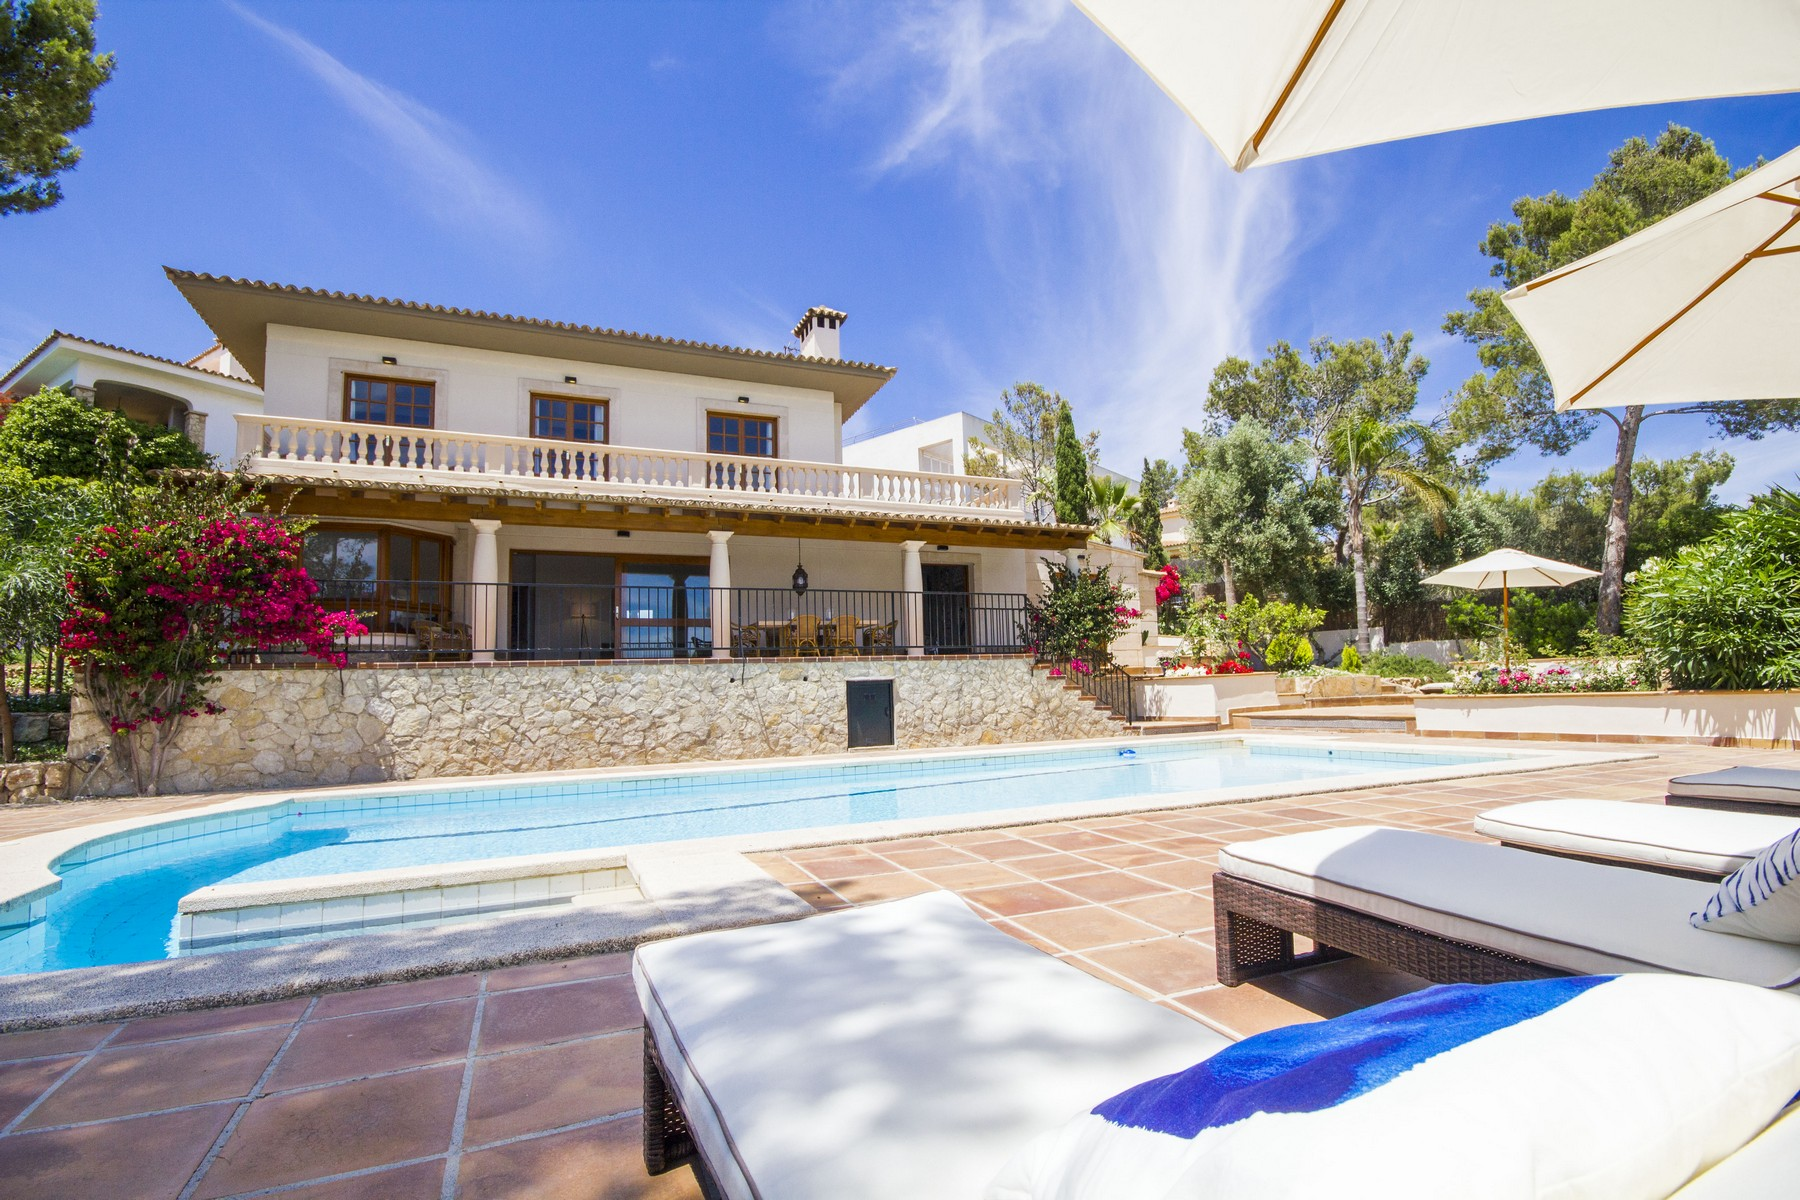 Single Family Home for Rent at Comfortable villa in Cas Catala Cas Catala, Mallorca, 07180 Spain